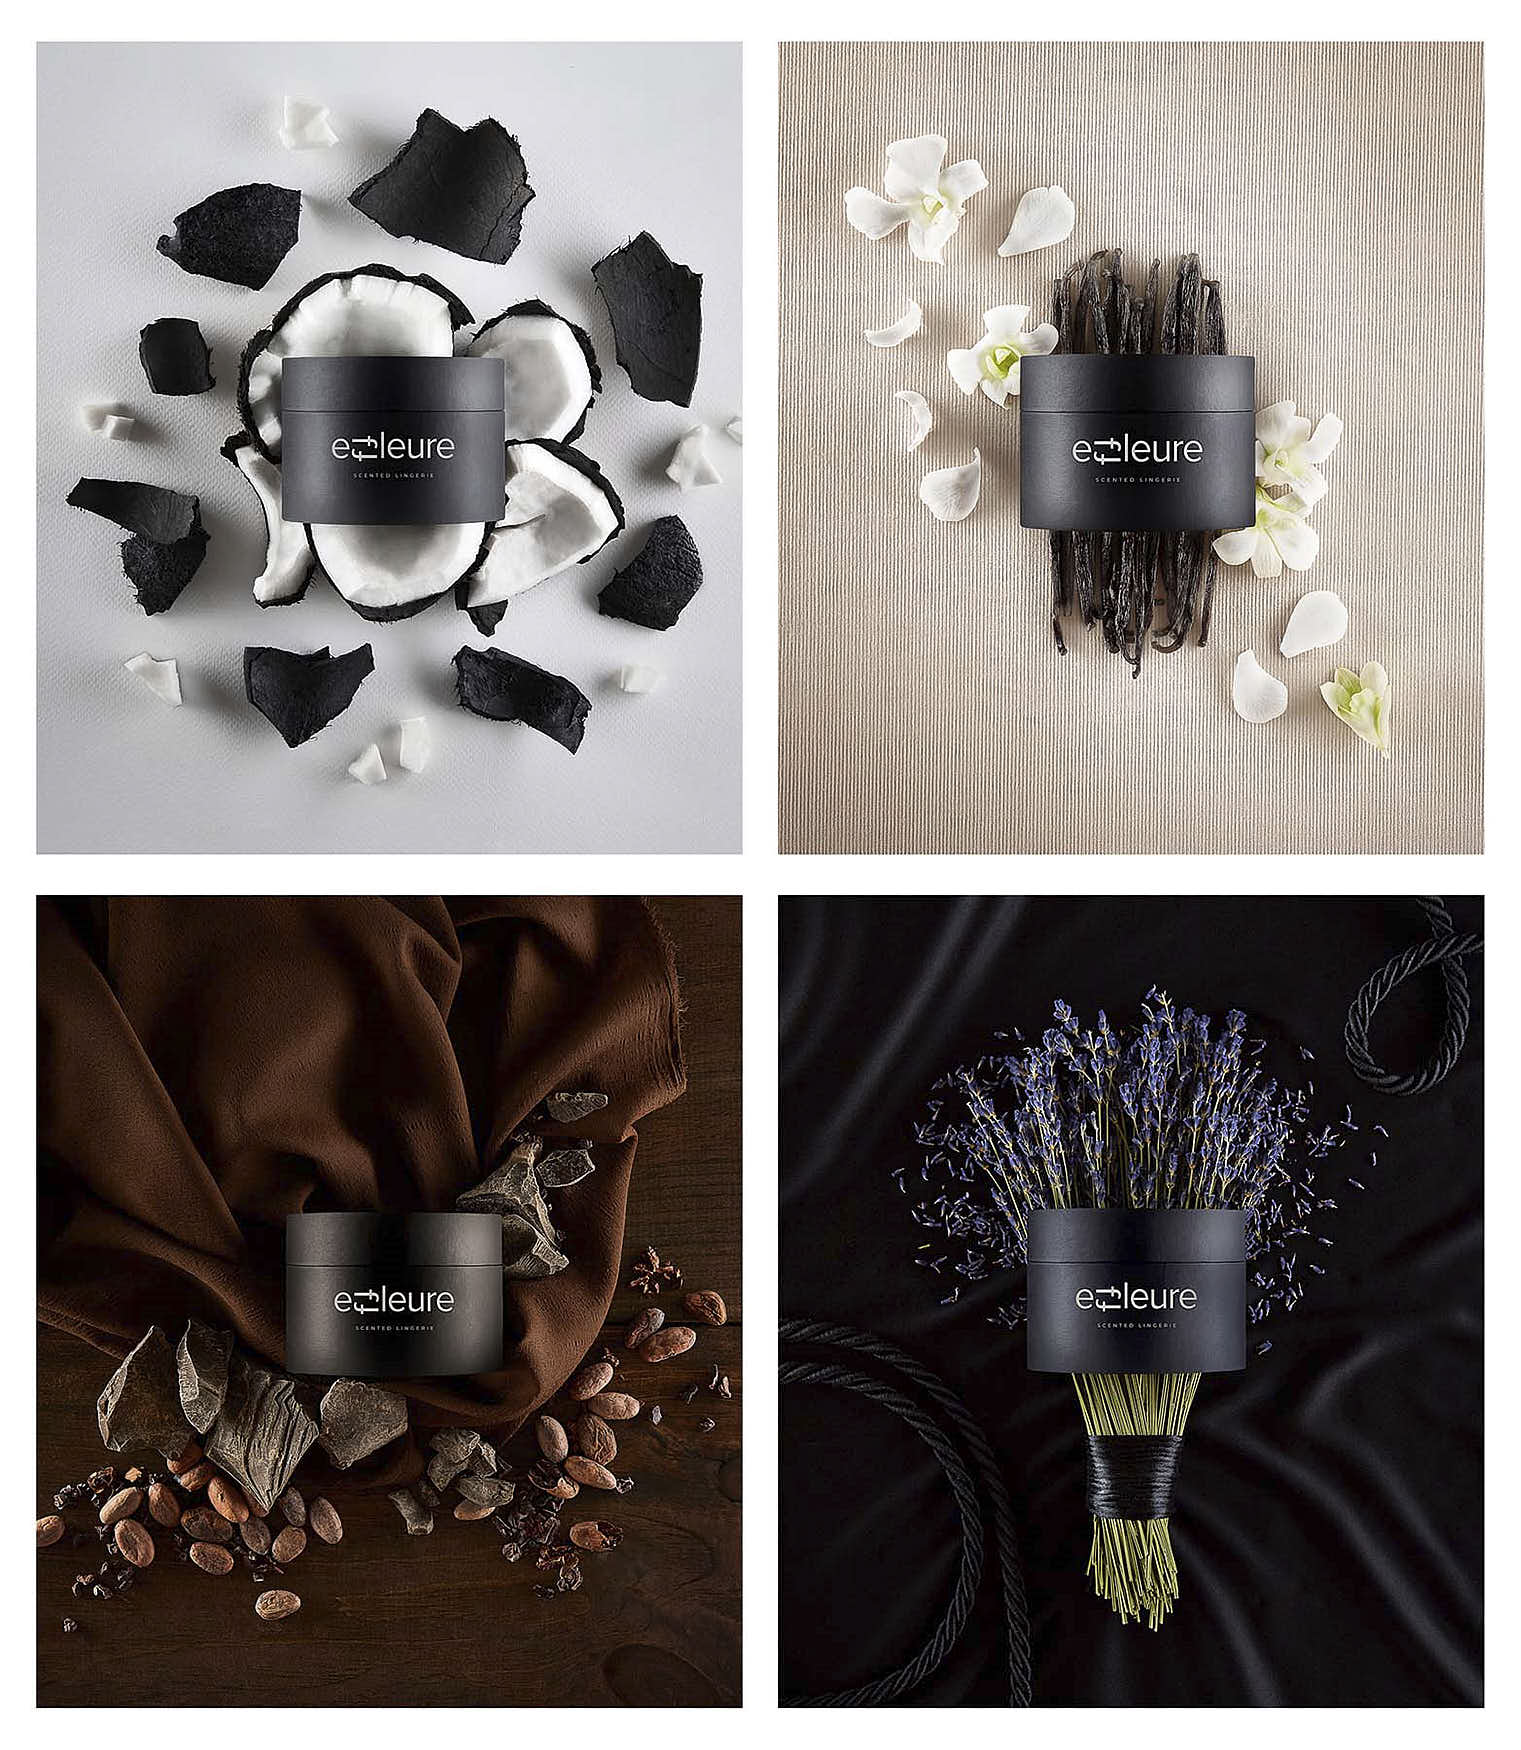 Effleure_AromaCollection-2_LR